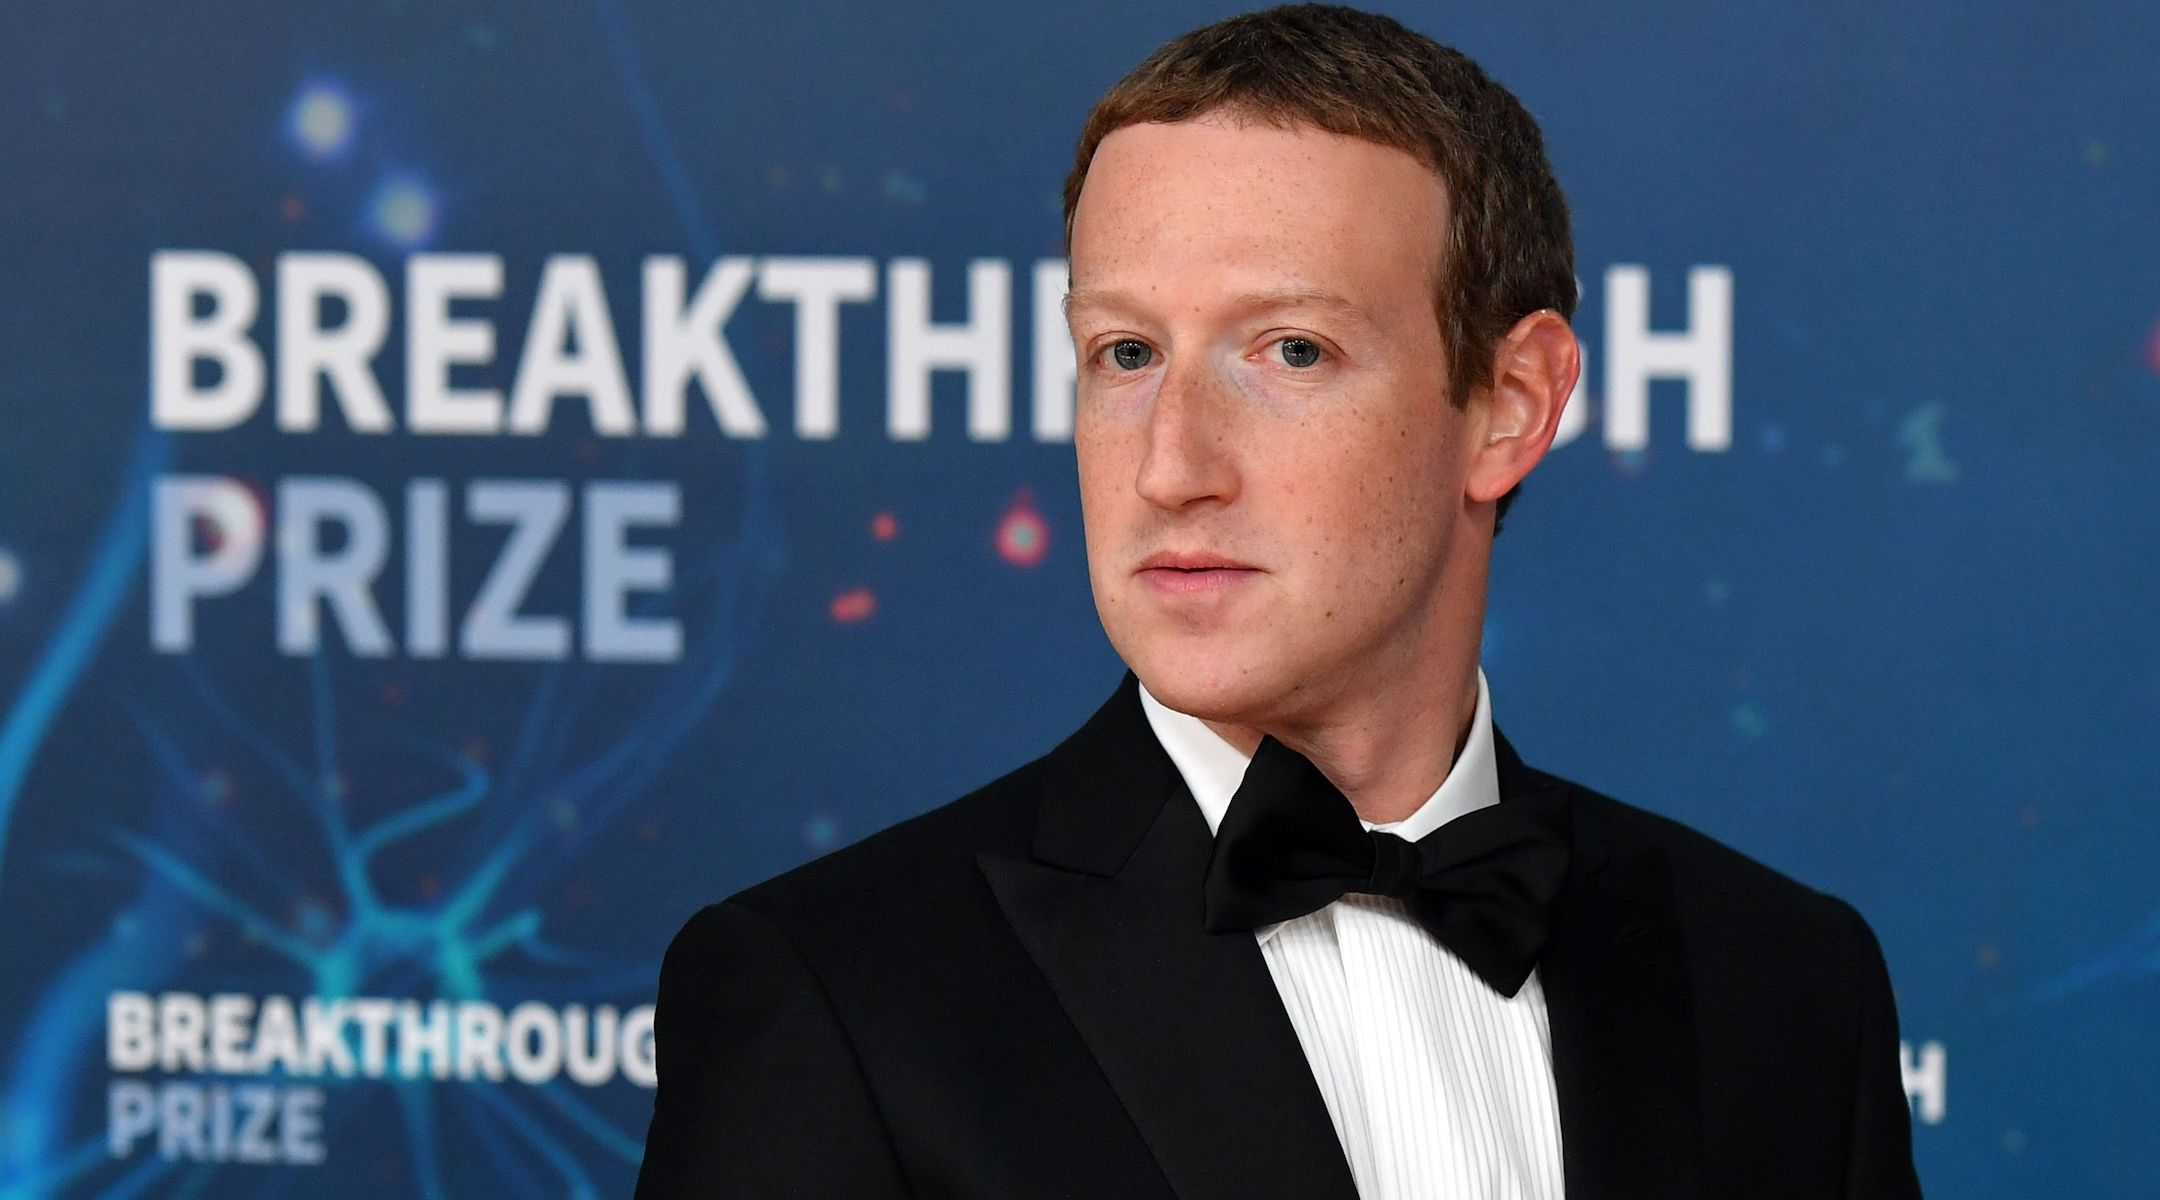 Mark Zuckerberg, seen in 2019, has repeatedly stuck by his hands-off approach to problematic speech. (Josh Edelson/AFP via Getty Images)